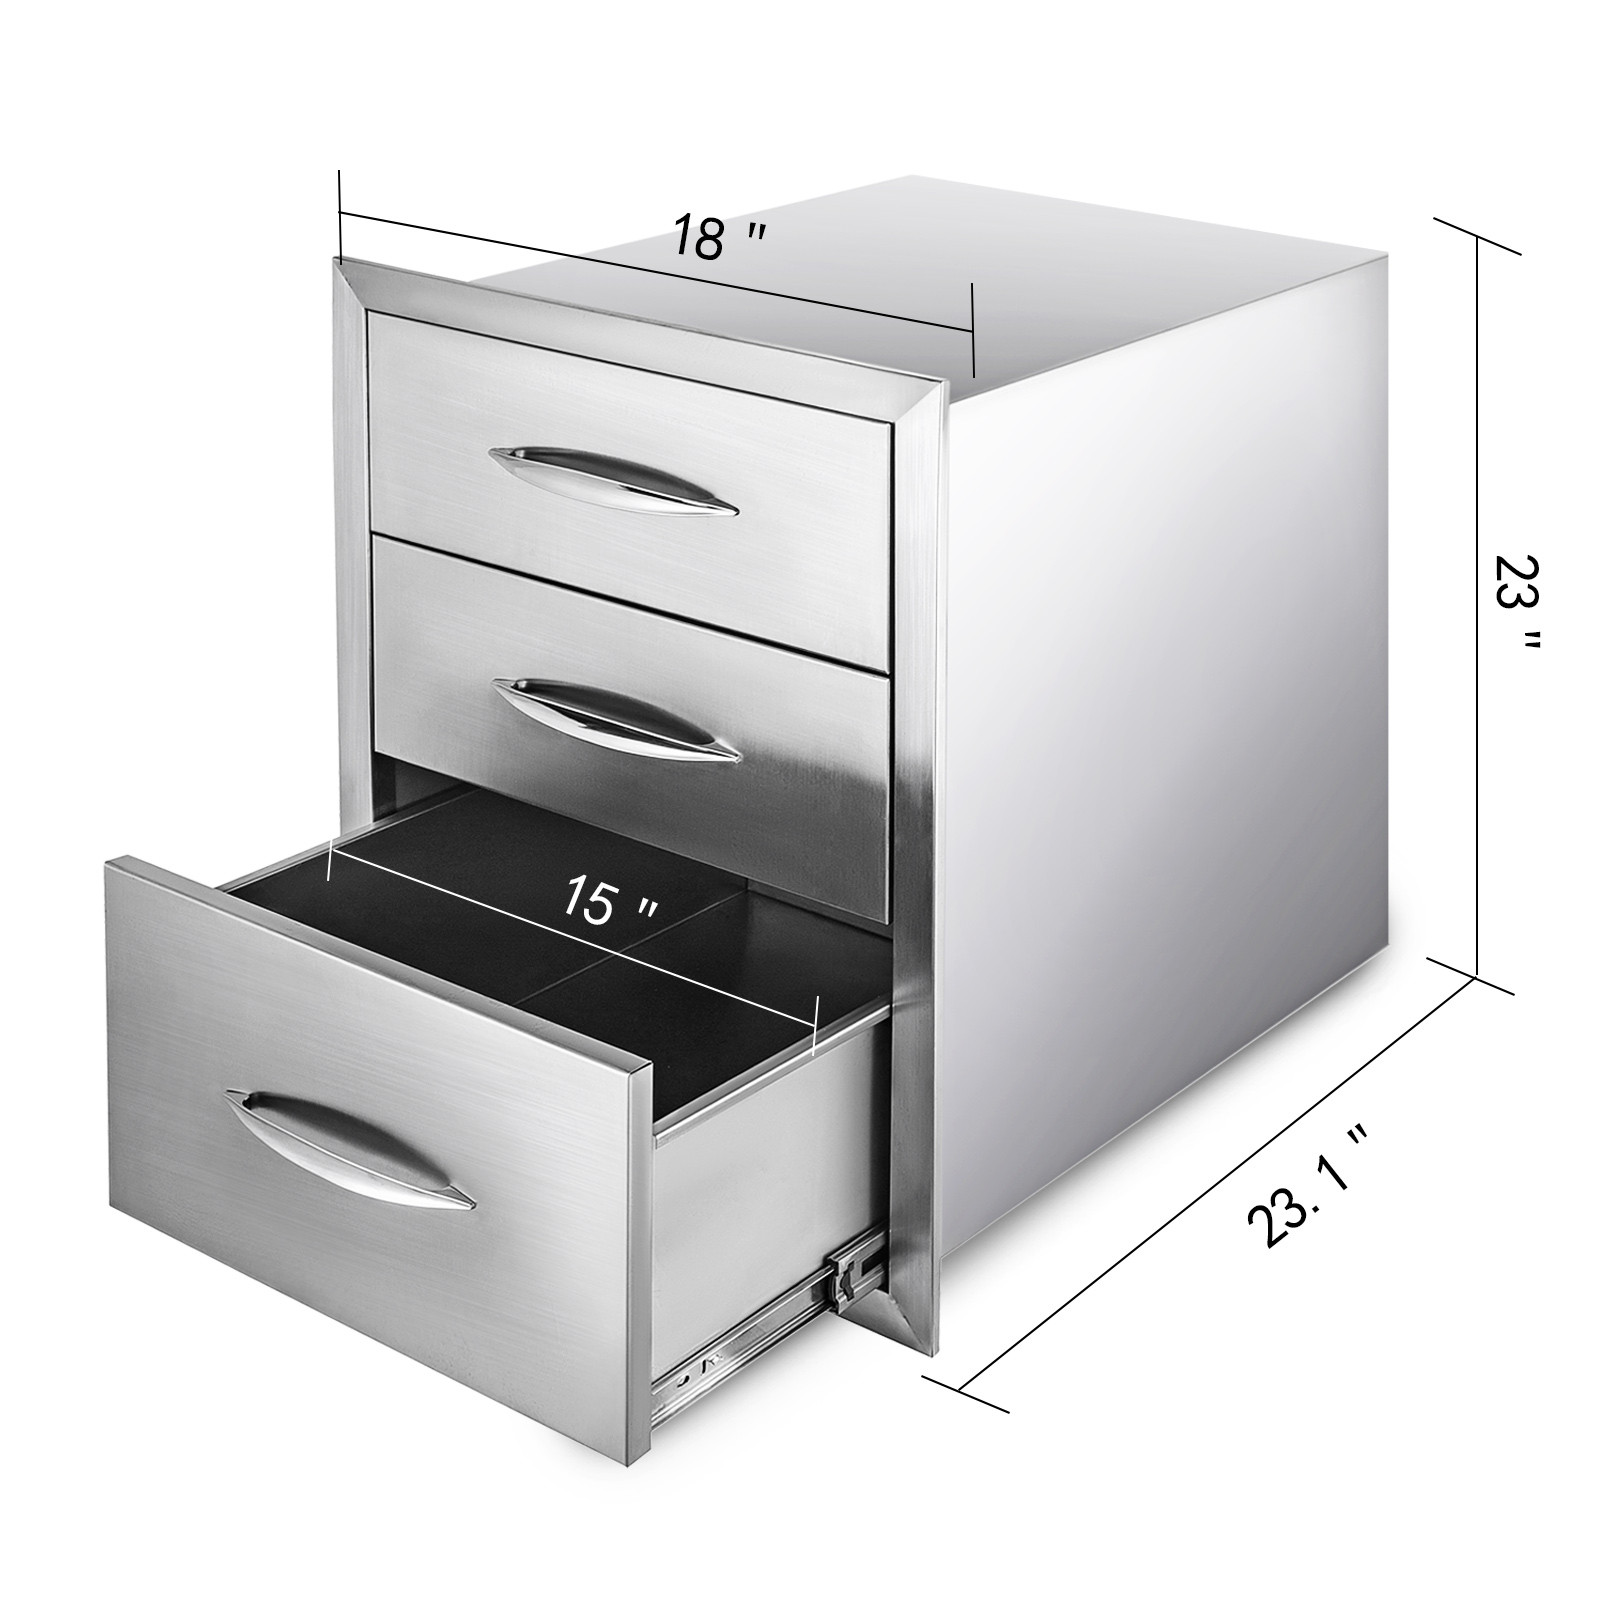 Outdoor Kitchen Bbq Island Components Stainless Steel